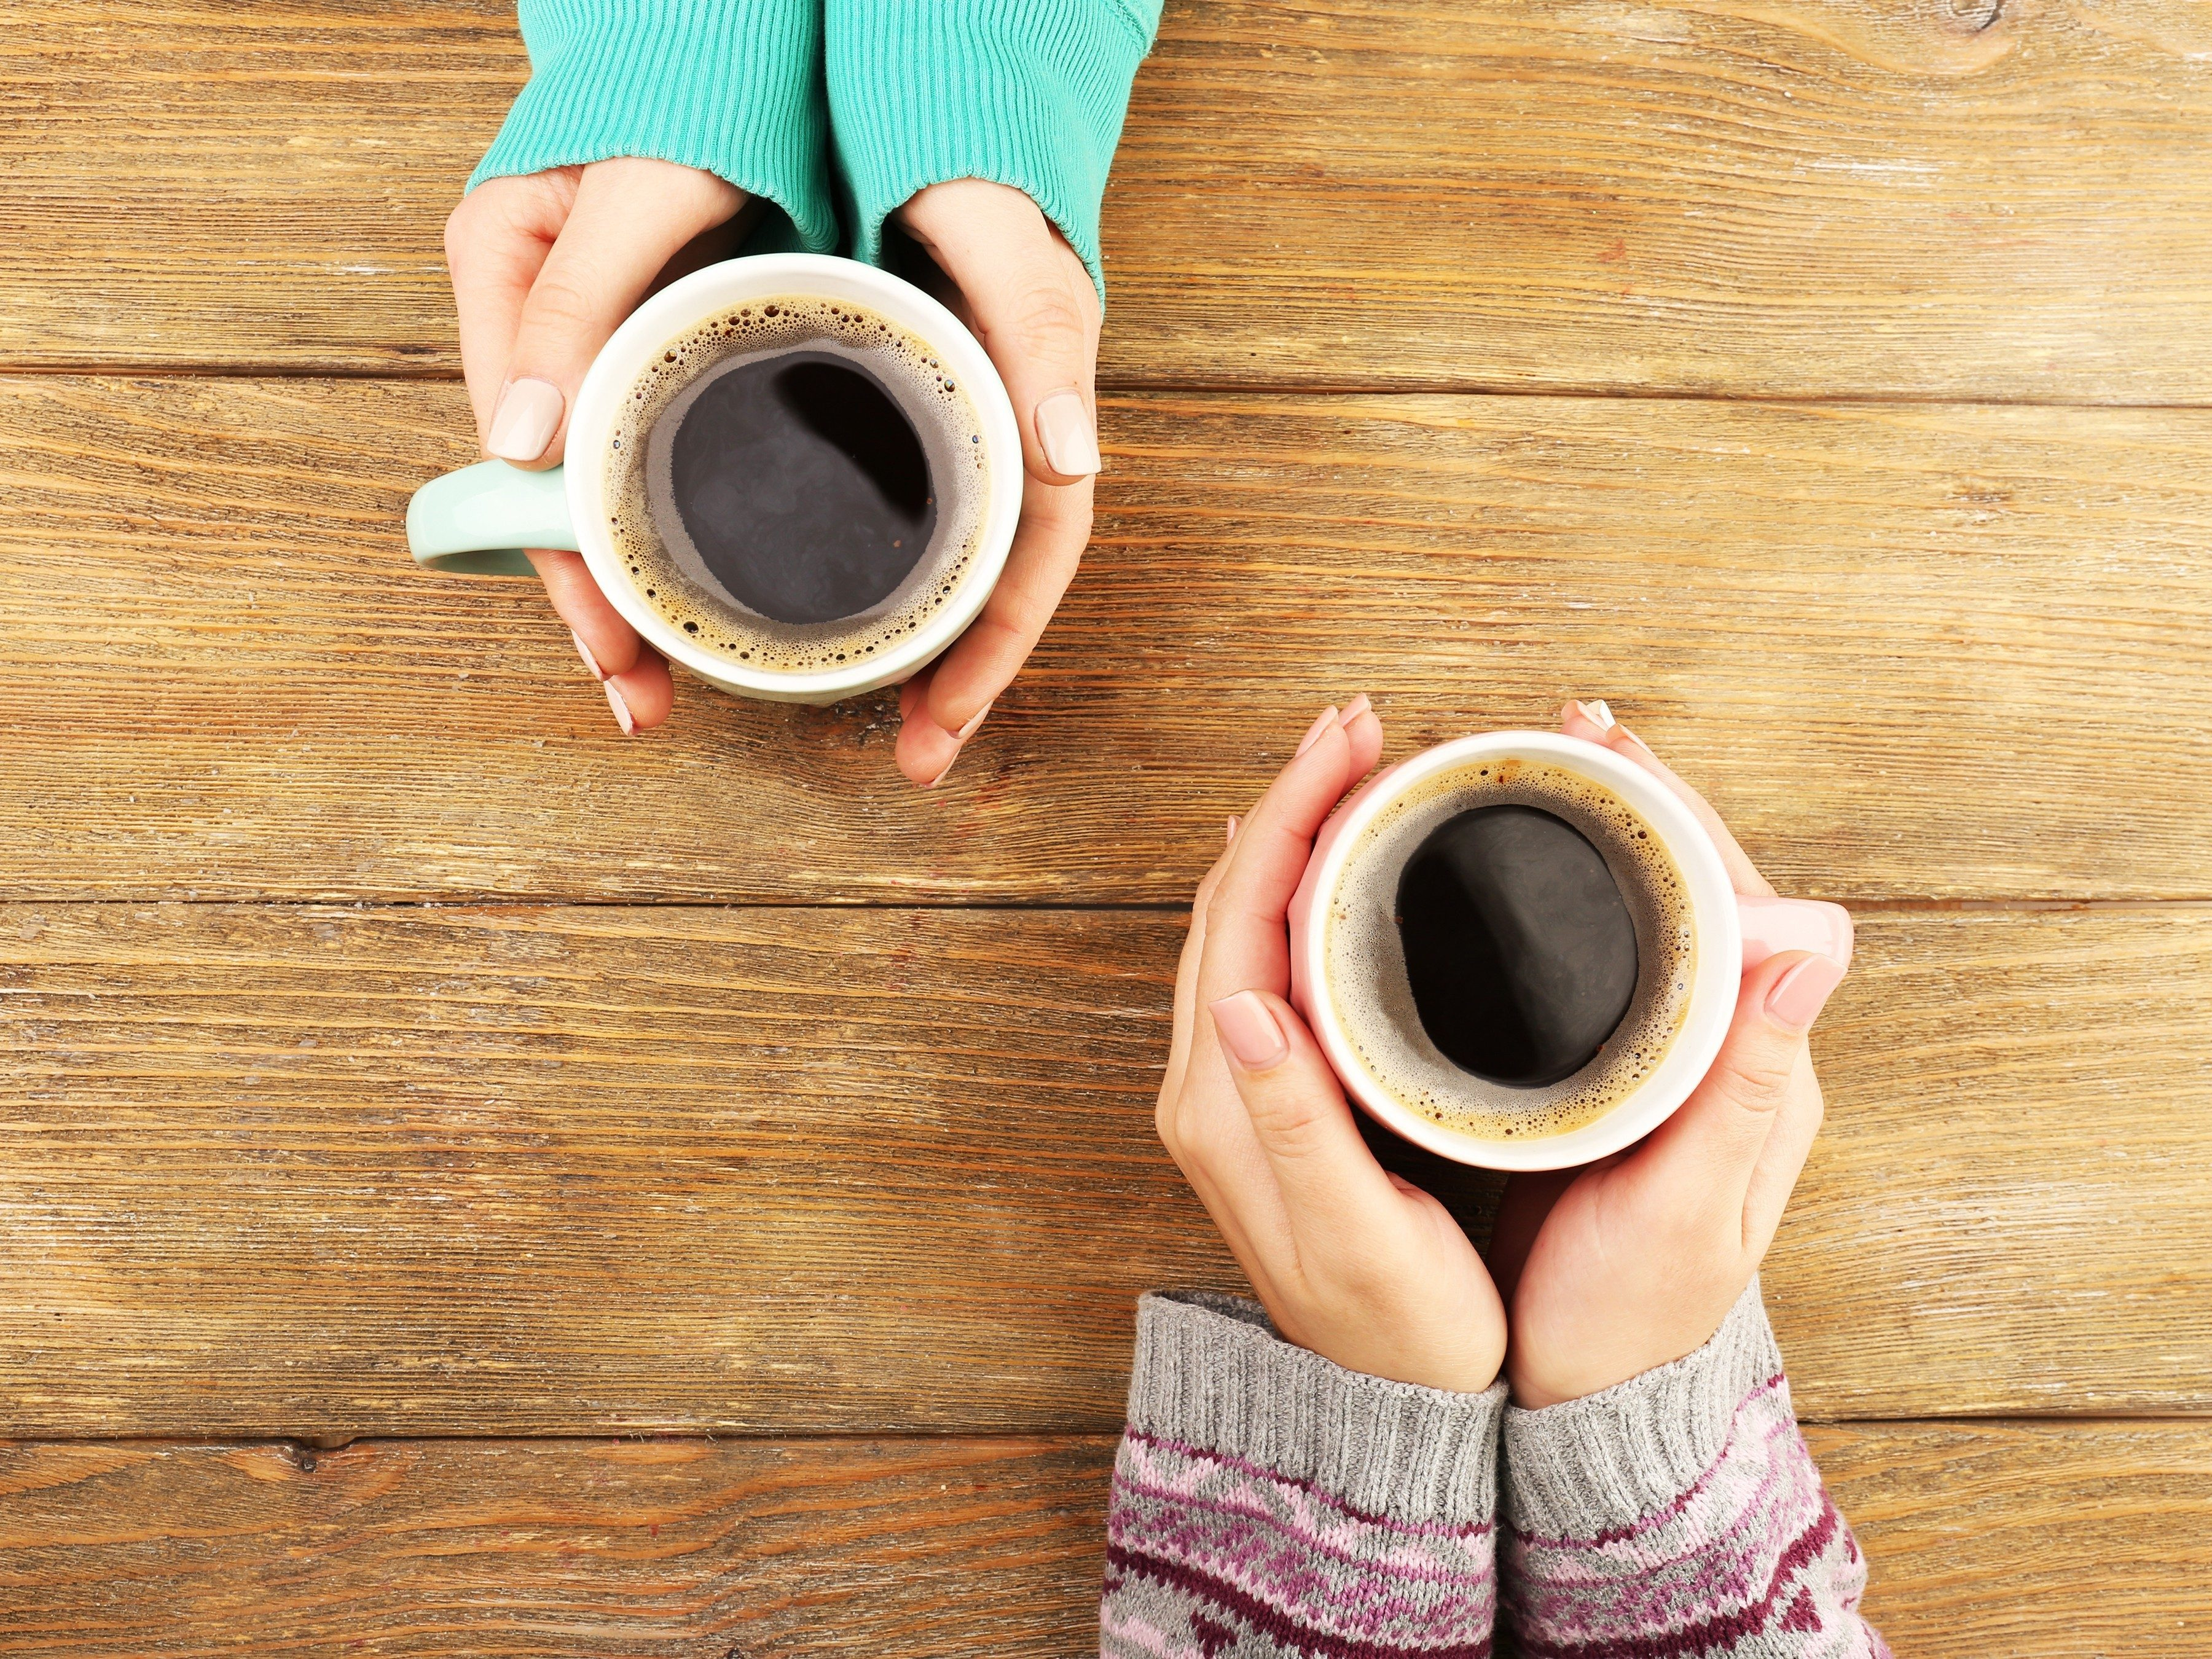 1. Get a better sleep by reducing your caffeine intake